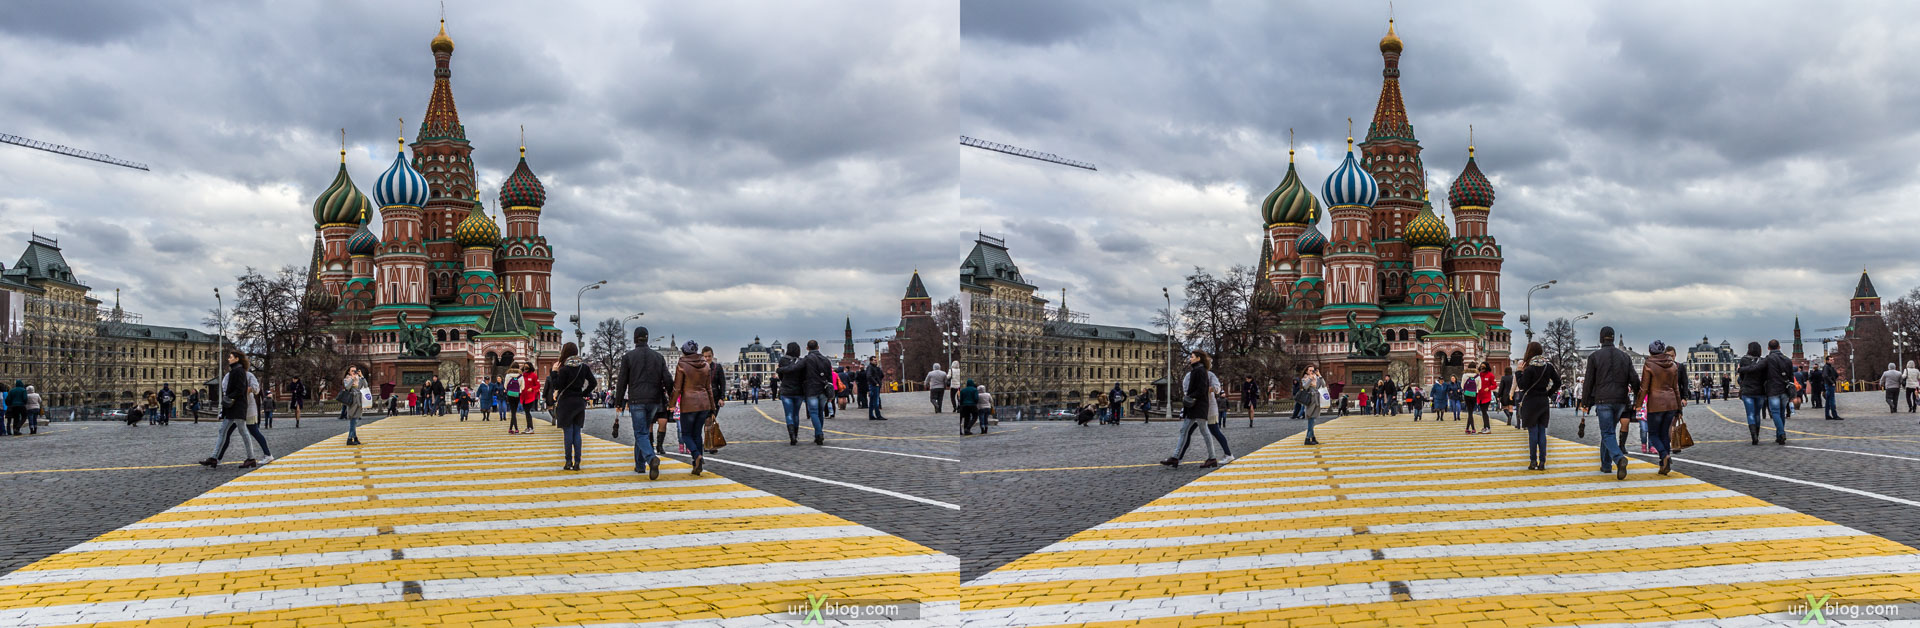 Red square, Moscow, Russia, 3D, stereo pair, cross-eyed, crossview, cross view stereo pair, stereoscopic, 2015